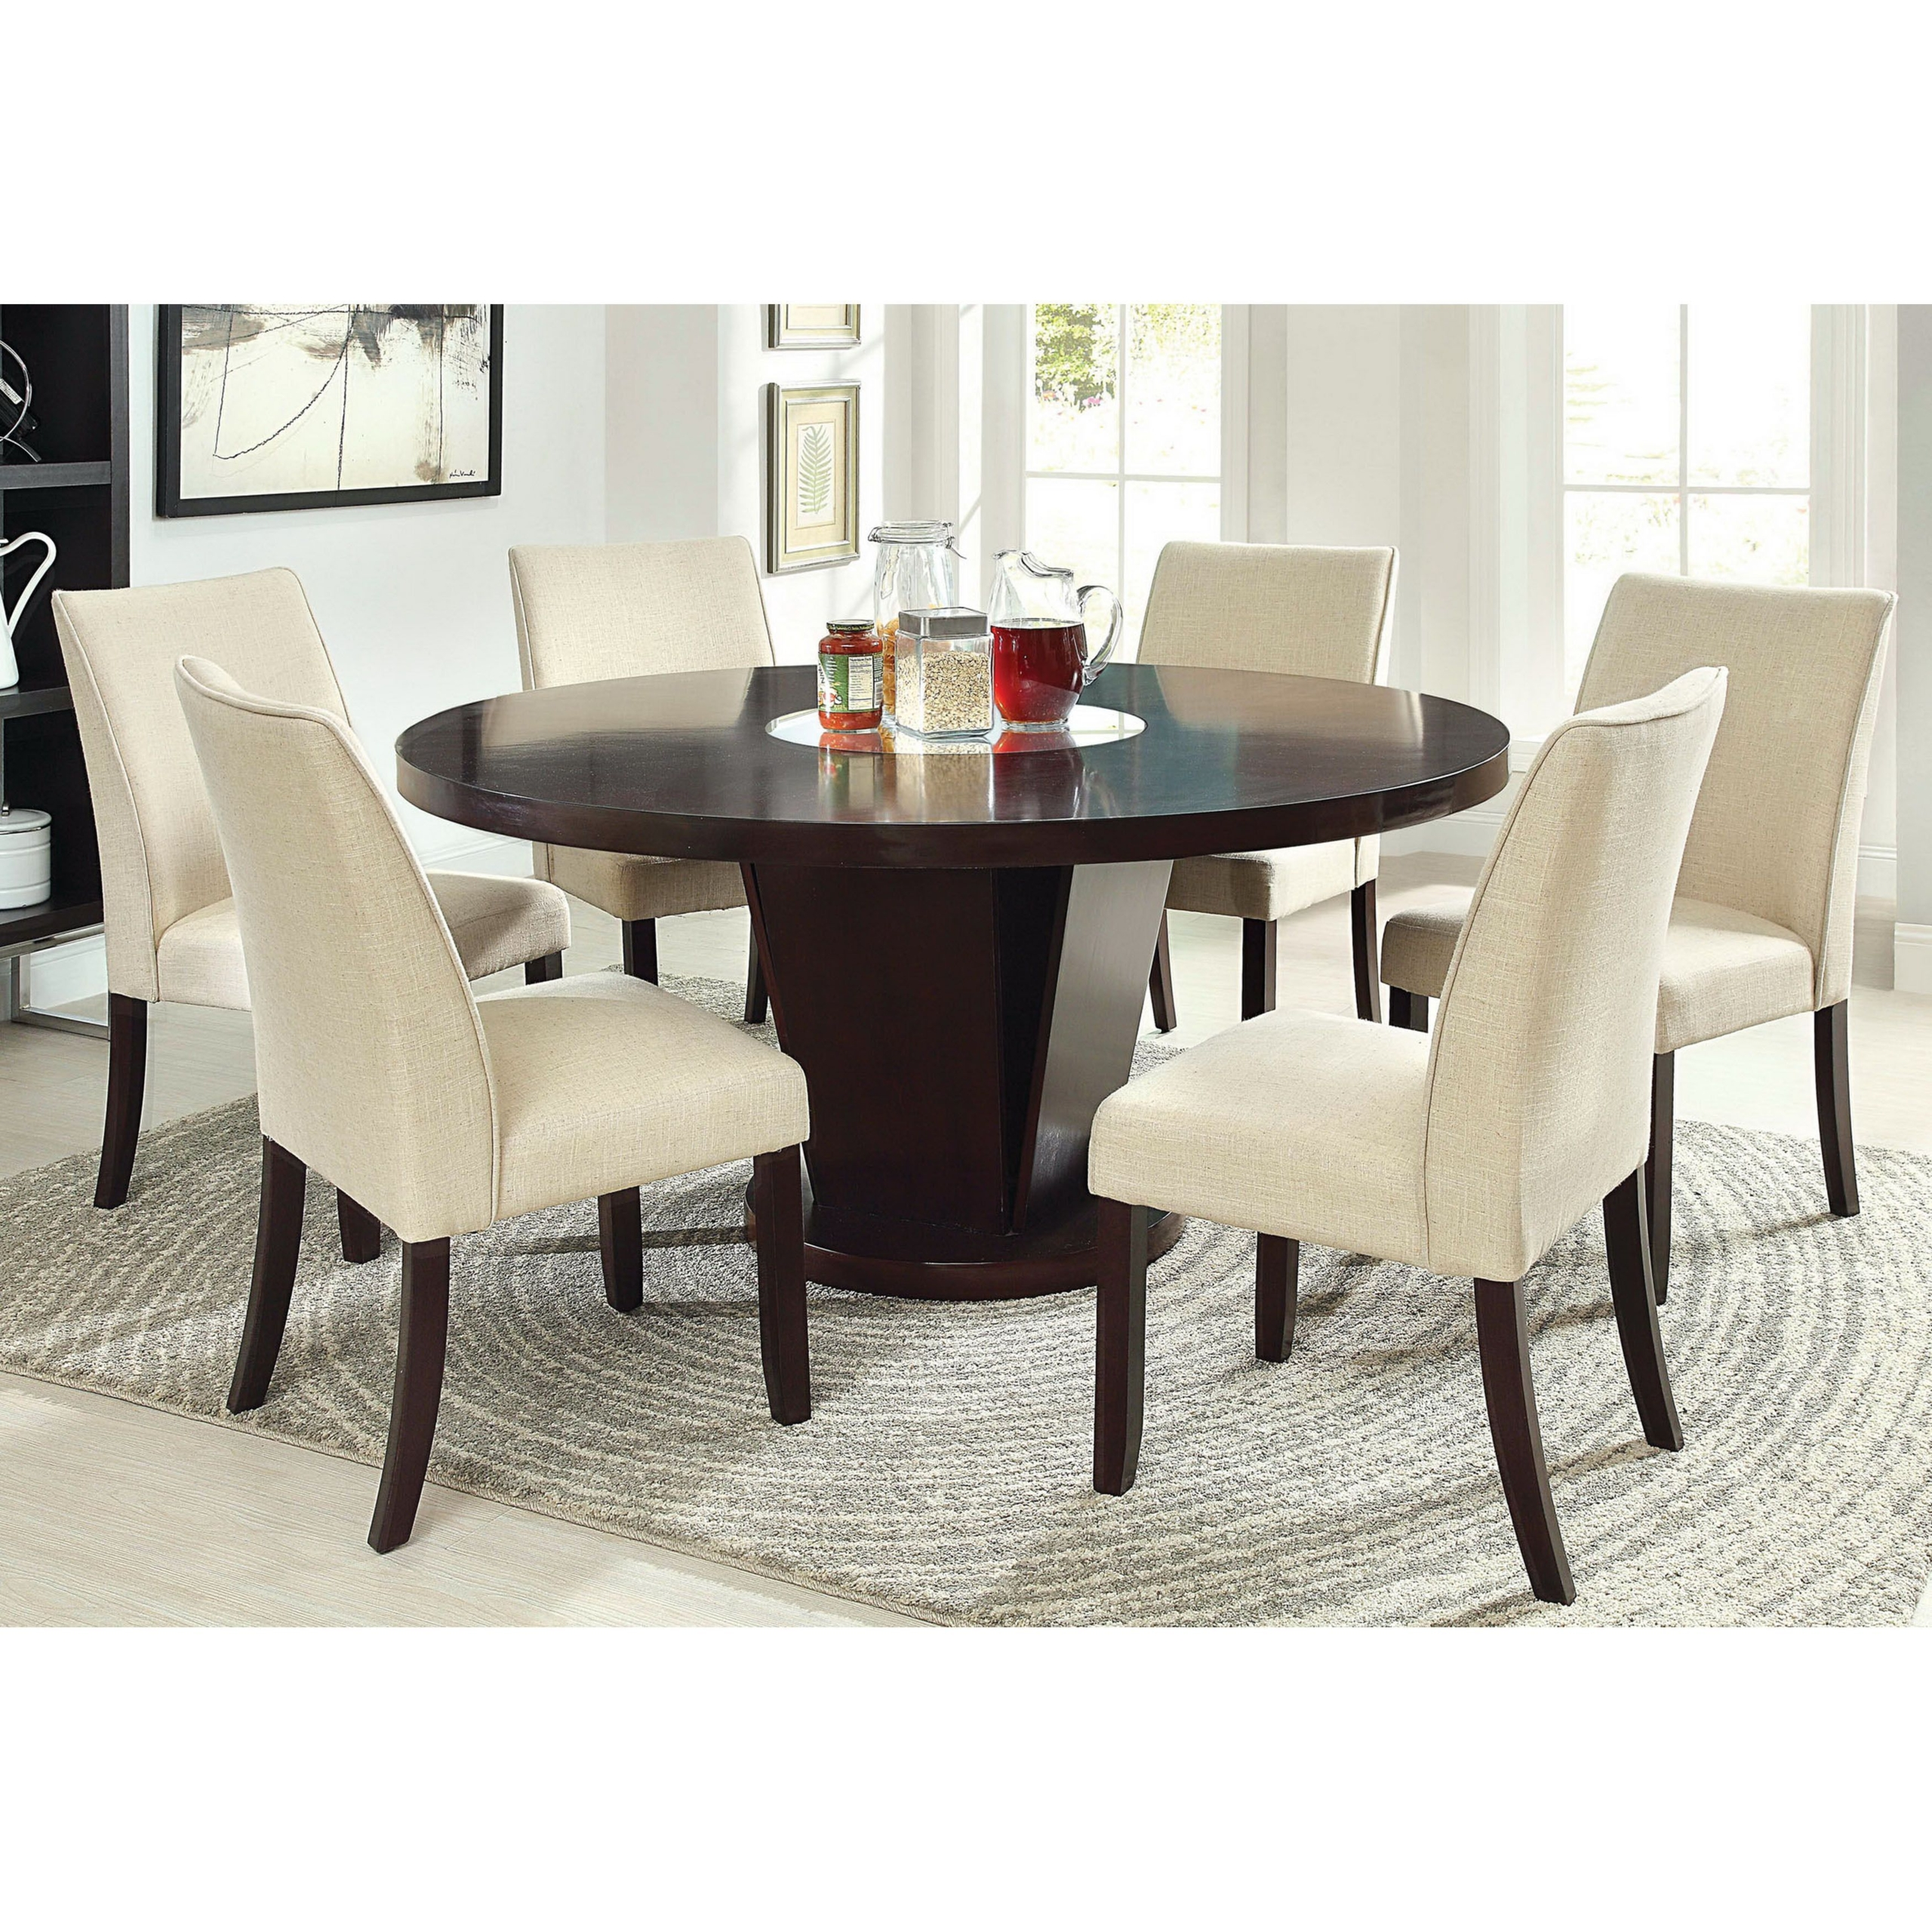 Breakfast Room Tables Round Dining Table For 6 Visual Hunt